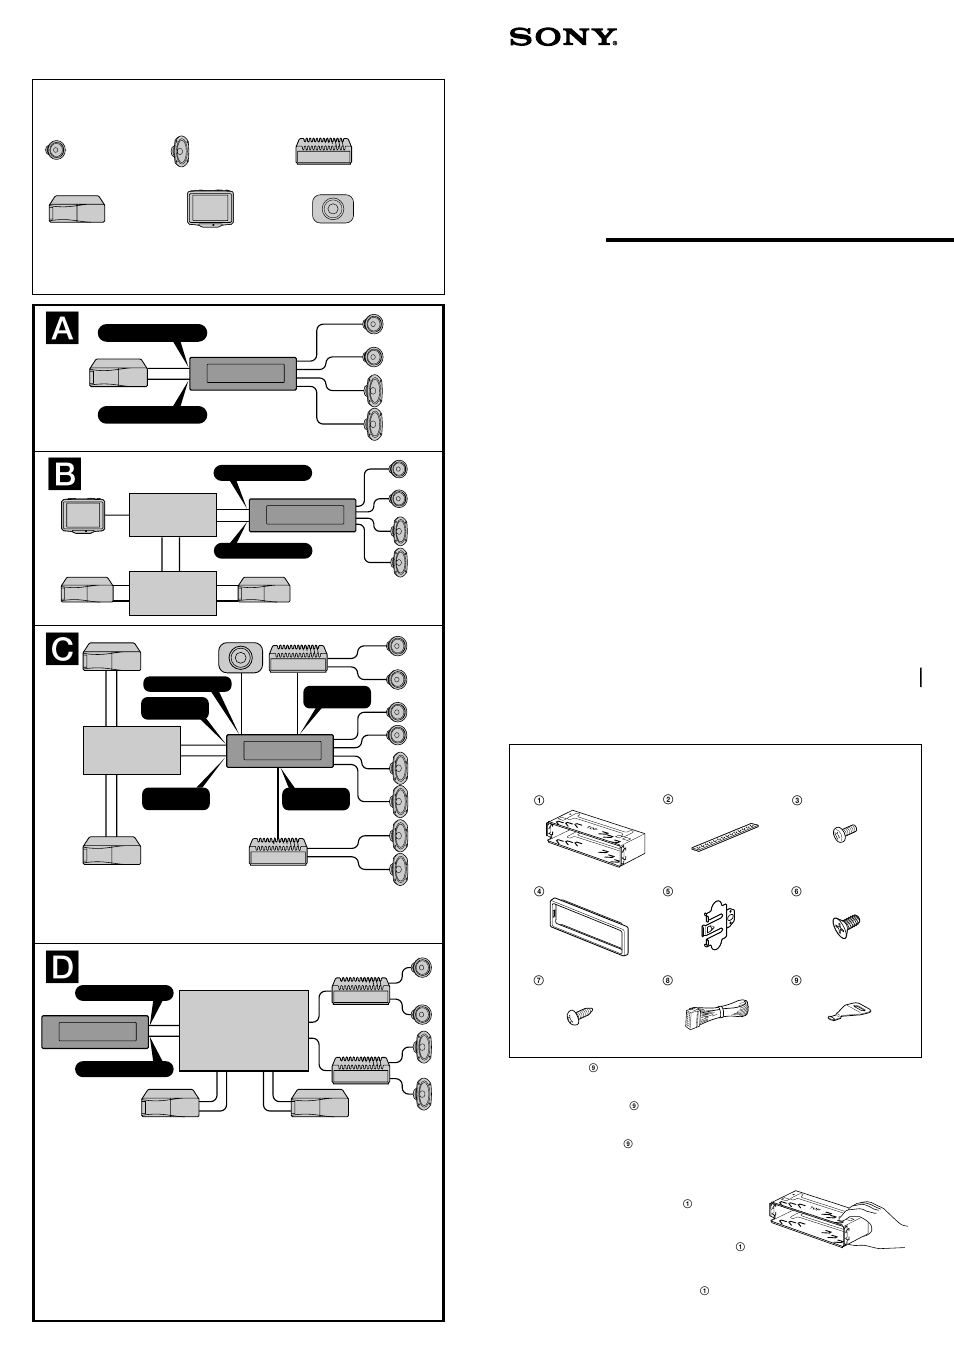 Sony Cdx M600 Manuel Dutilisation Pages 4 M750 Wiring Diagram